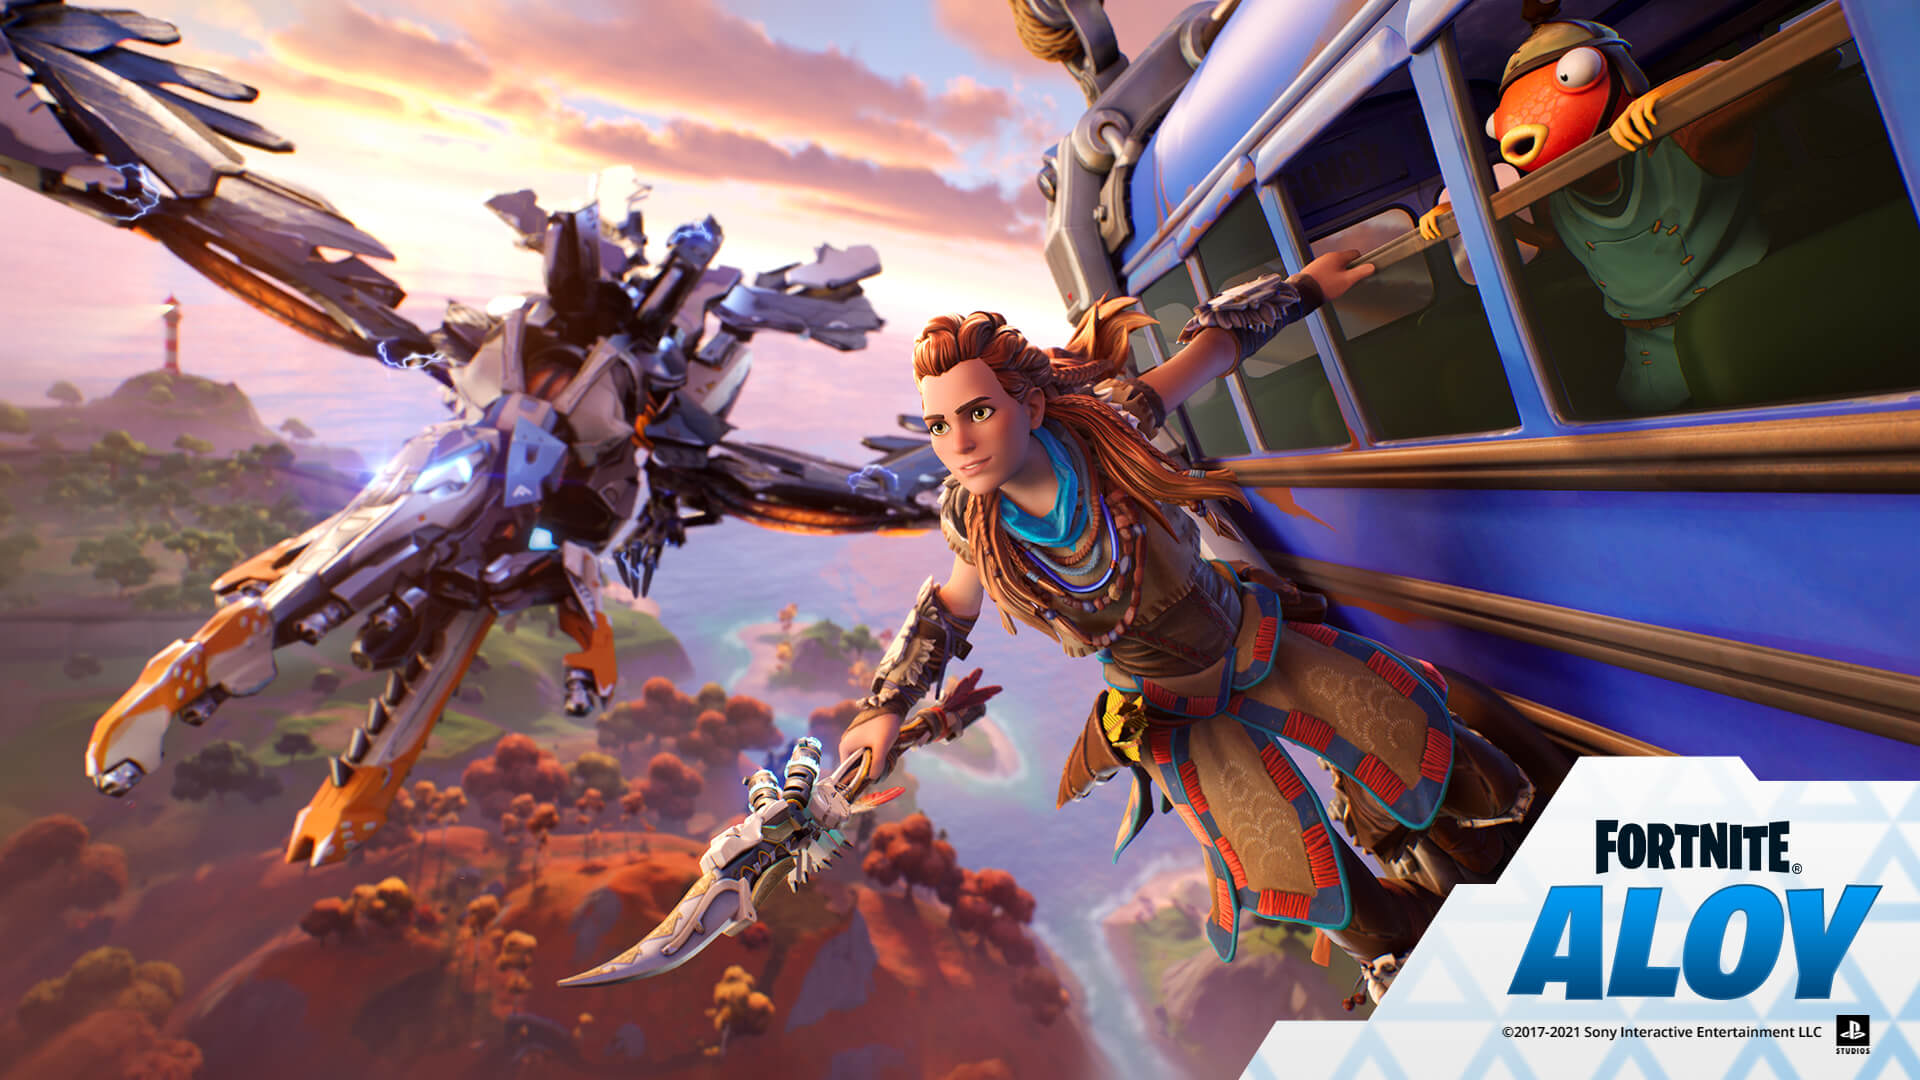 Aloy From Horizon Zero Dawn Joins Fortnite's Roster Of Collab Characters